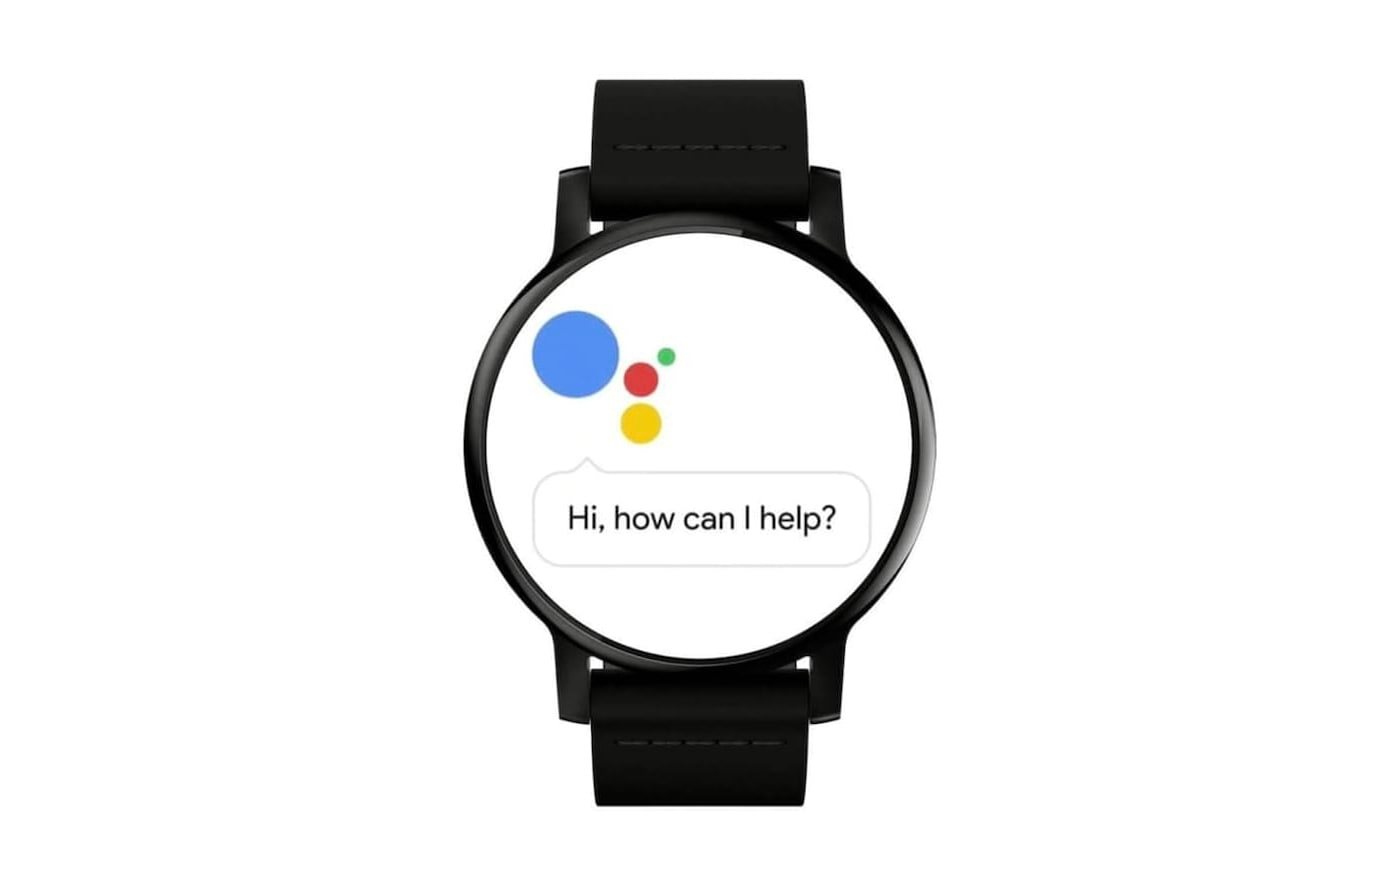 O que podemos esperar do smartwatch Google Pixel Watch?